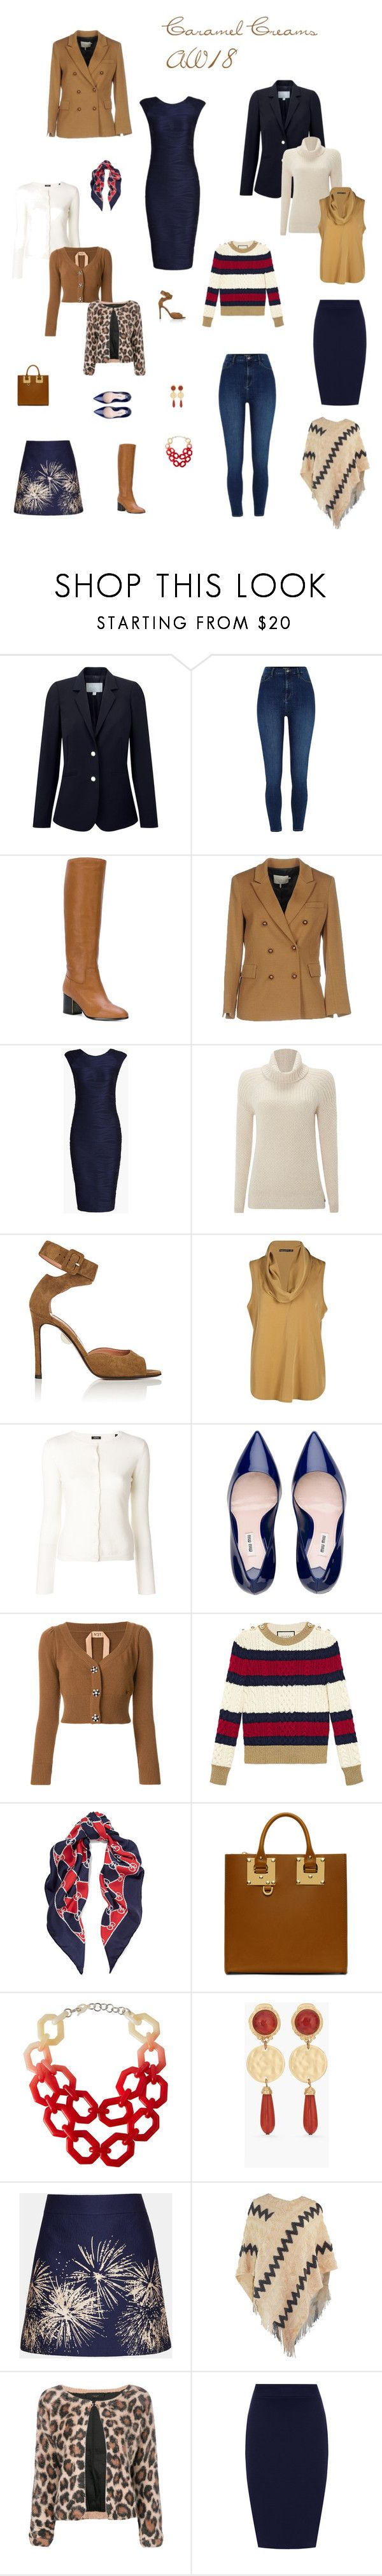 """""""Caramel Creams AW 18"""" by cokie61 on Polyvore featuring Pure Collection, River Island, Jil Sander Navy, L'Autre Chose, WithChic, White Stuff, Samuele Failli, Aspesi, Gucci and Sophie Hulme"""